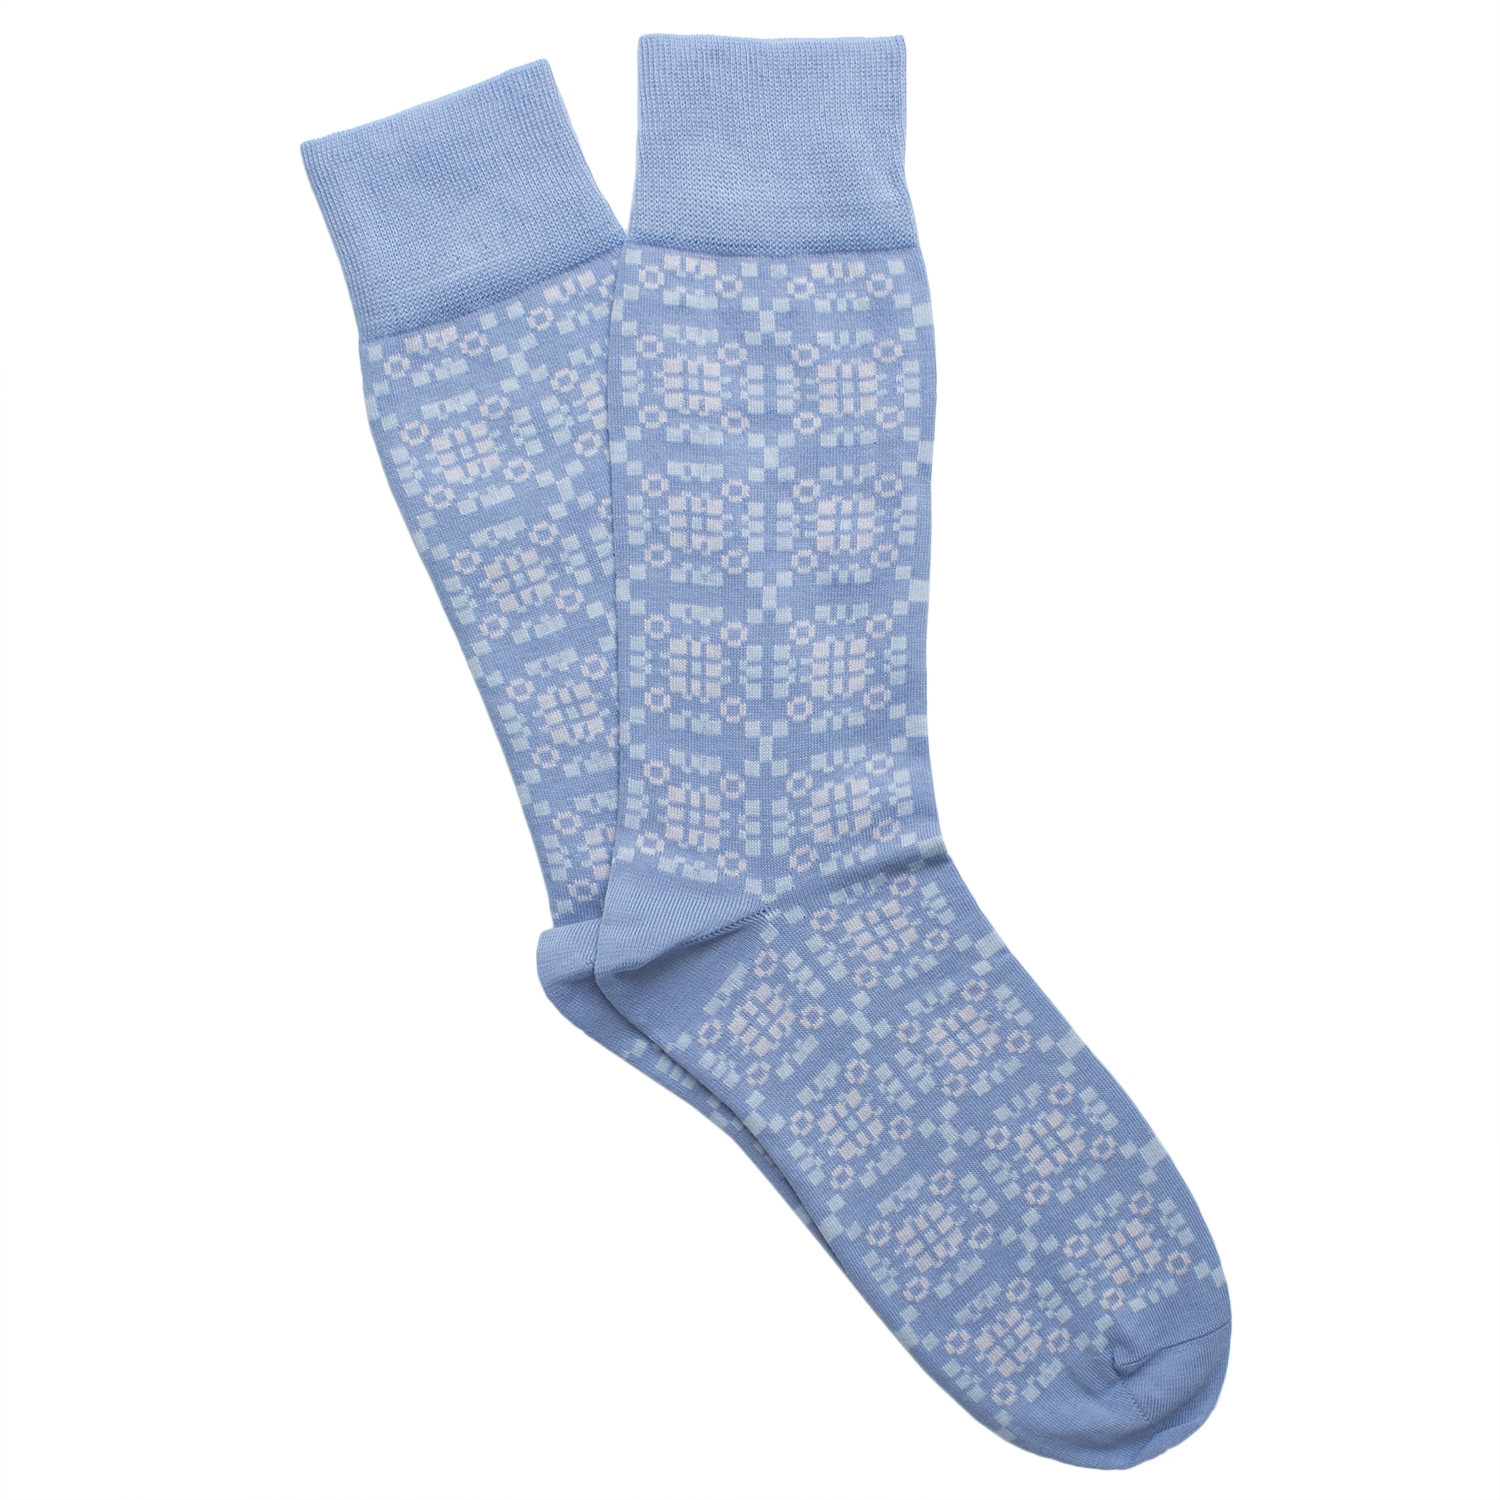 Tapestri babyblue cotton blend socks